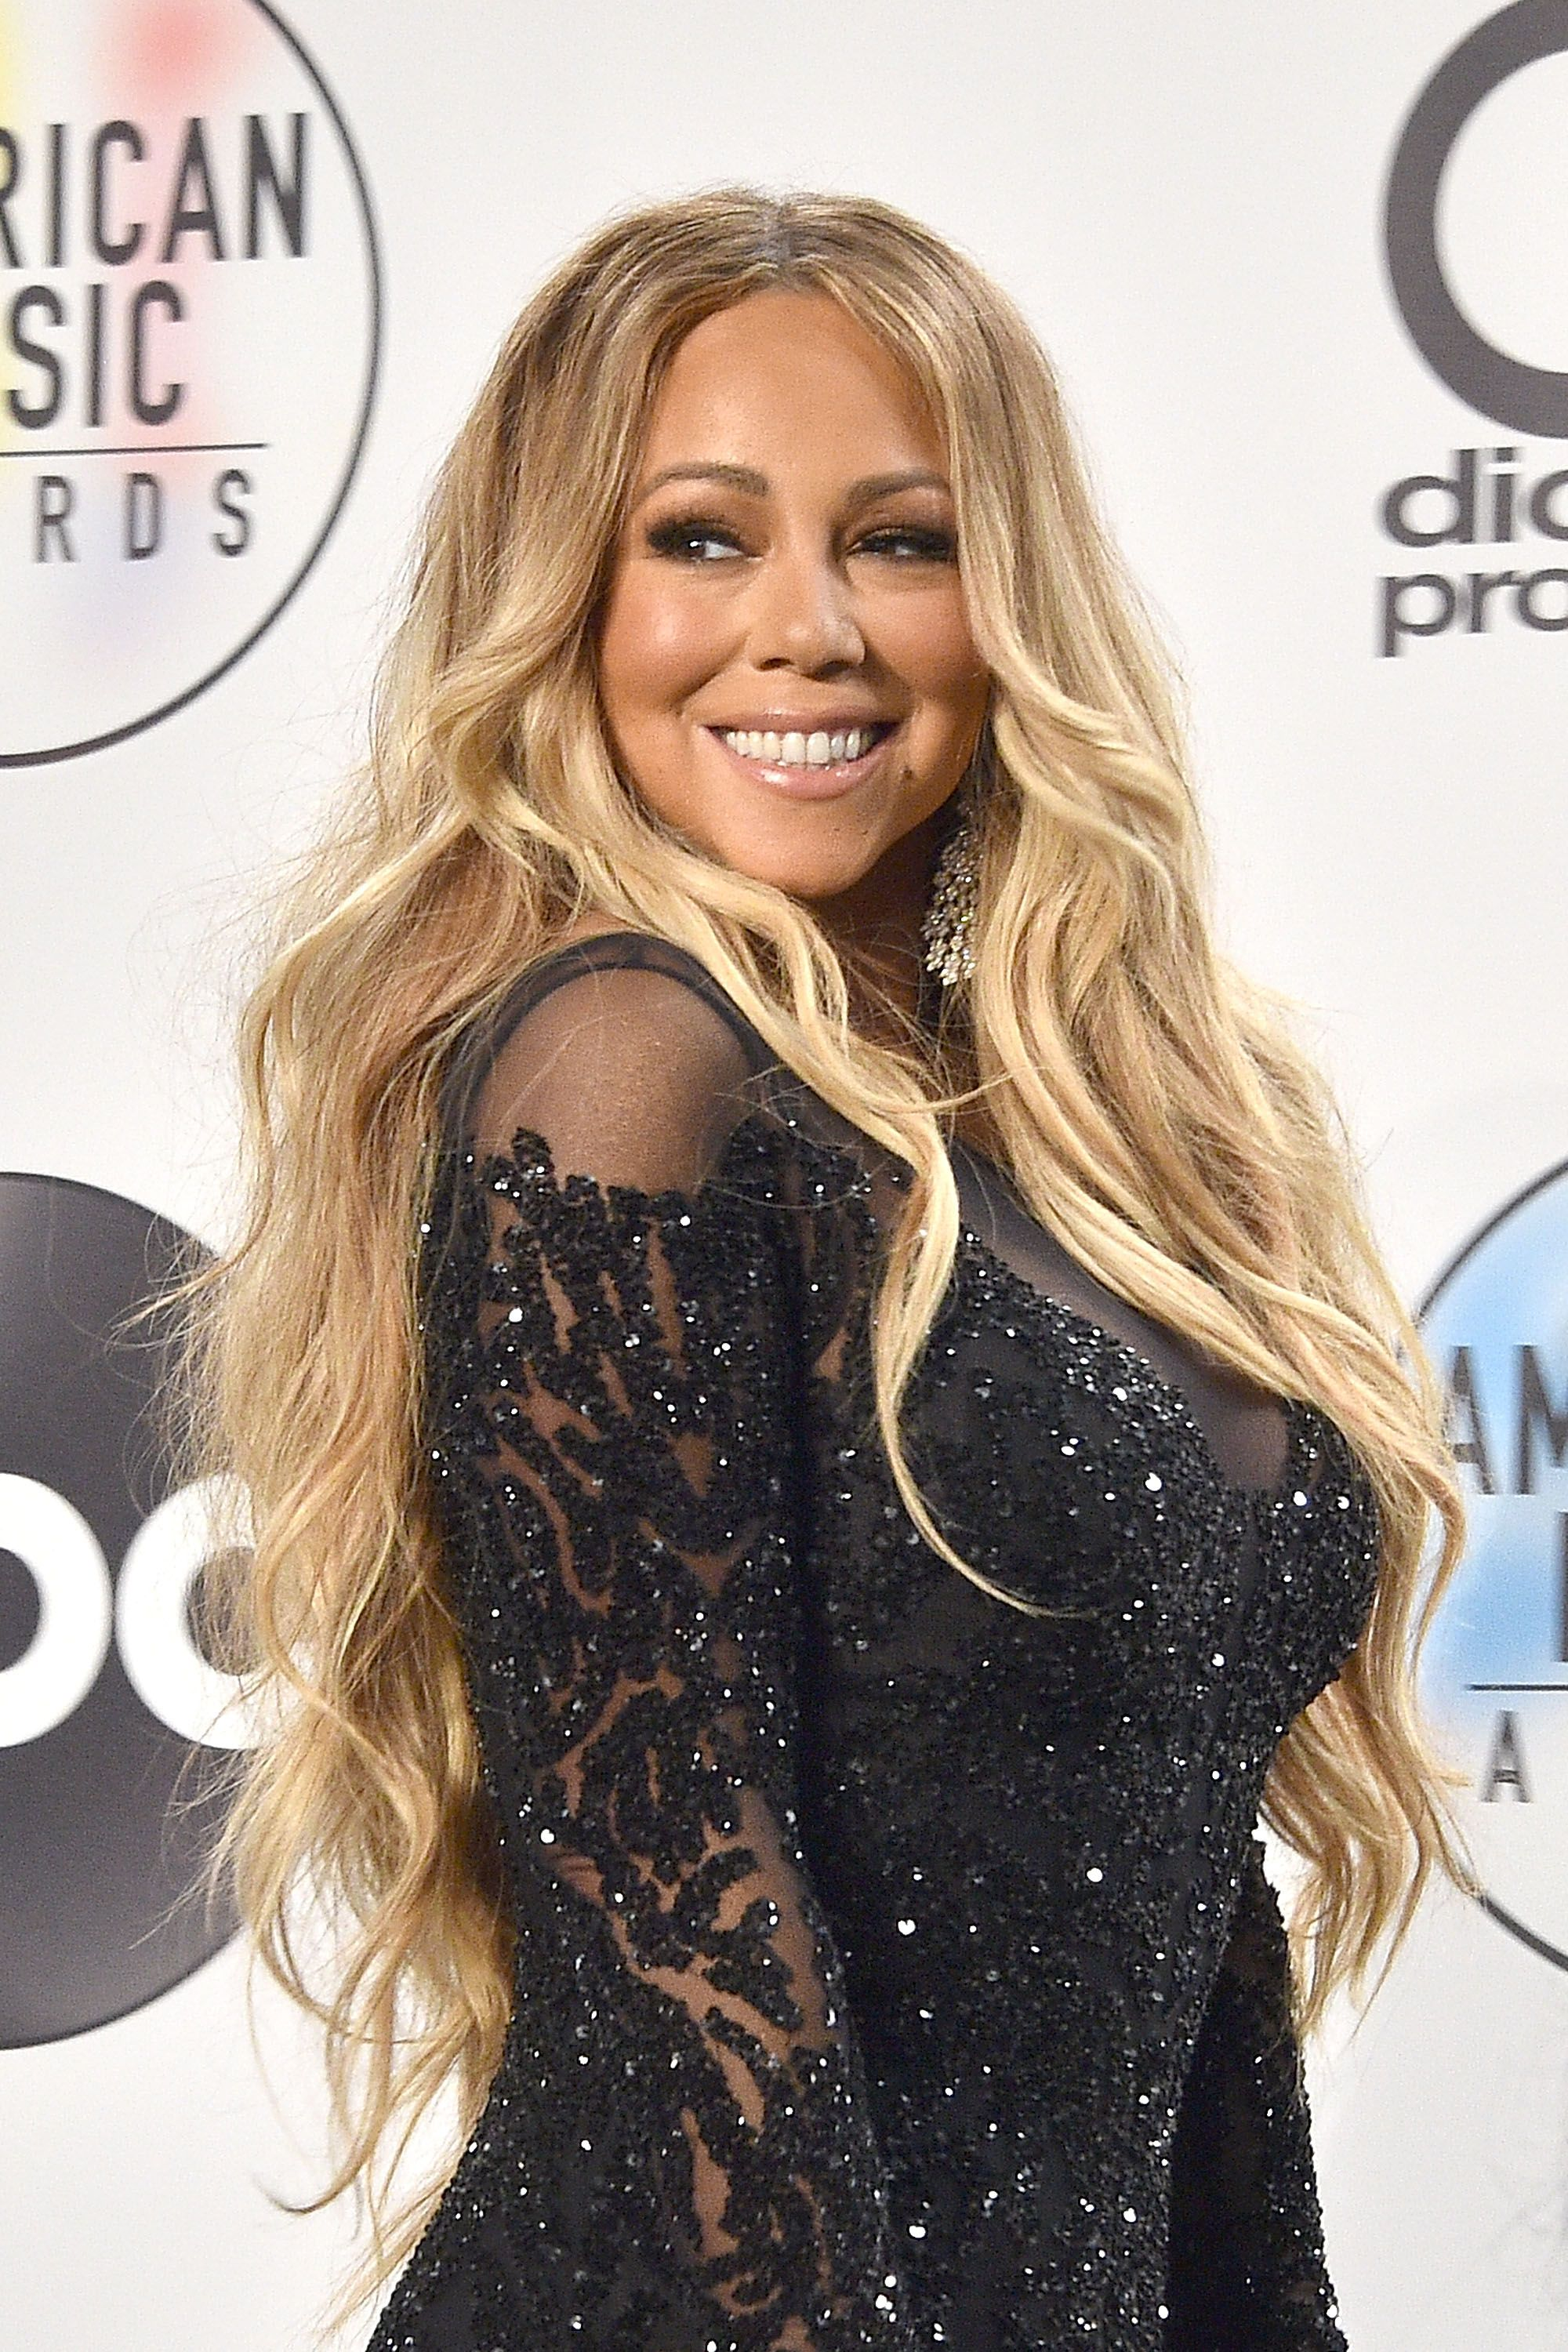 Mariah Carey at the American Music Awards - Press Room on October 9, 2018, in Los Angeles, California | Photo: David Crotty/Patrick McMullan/Getty Images